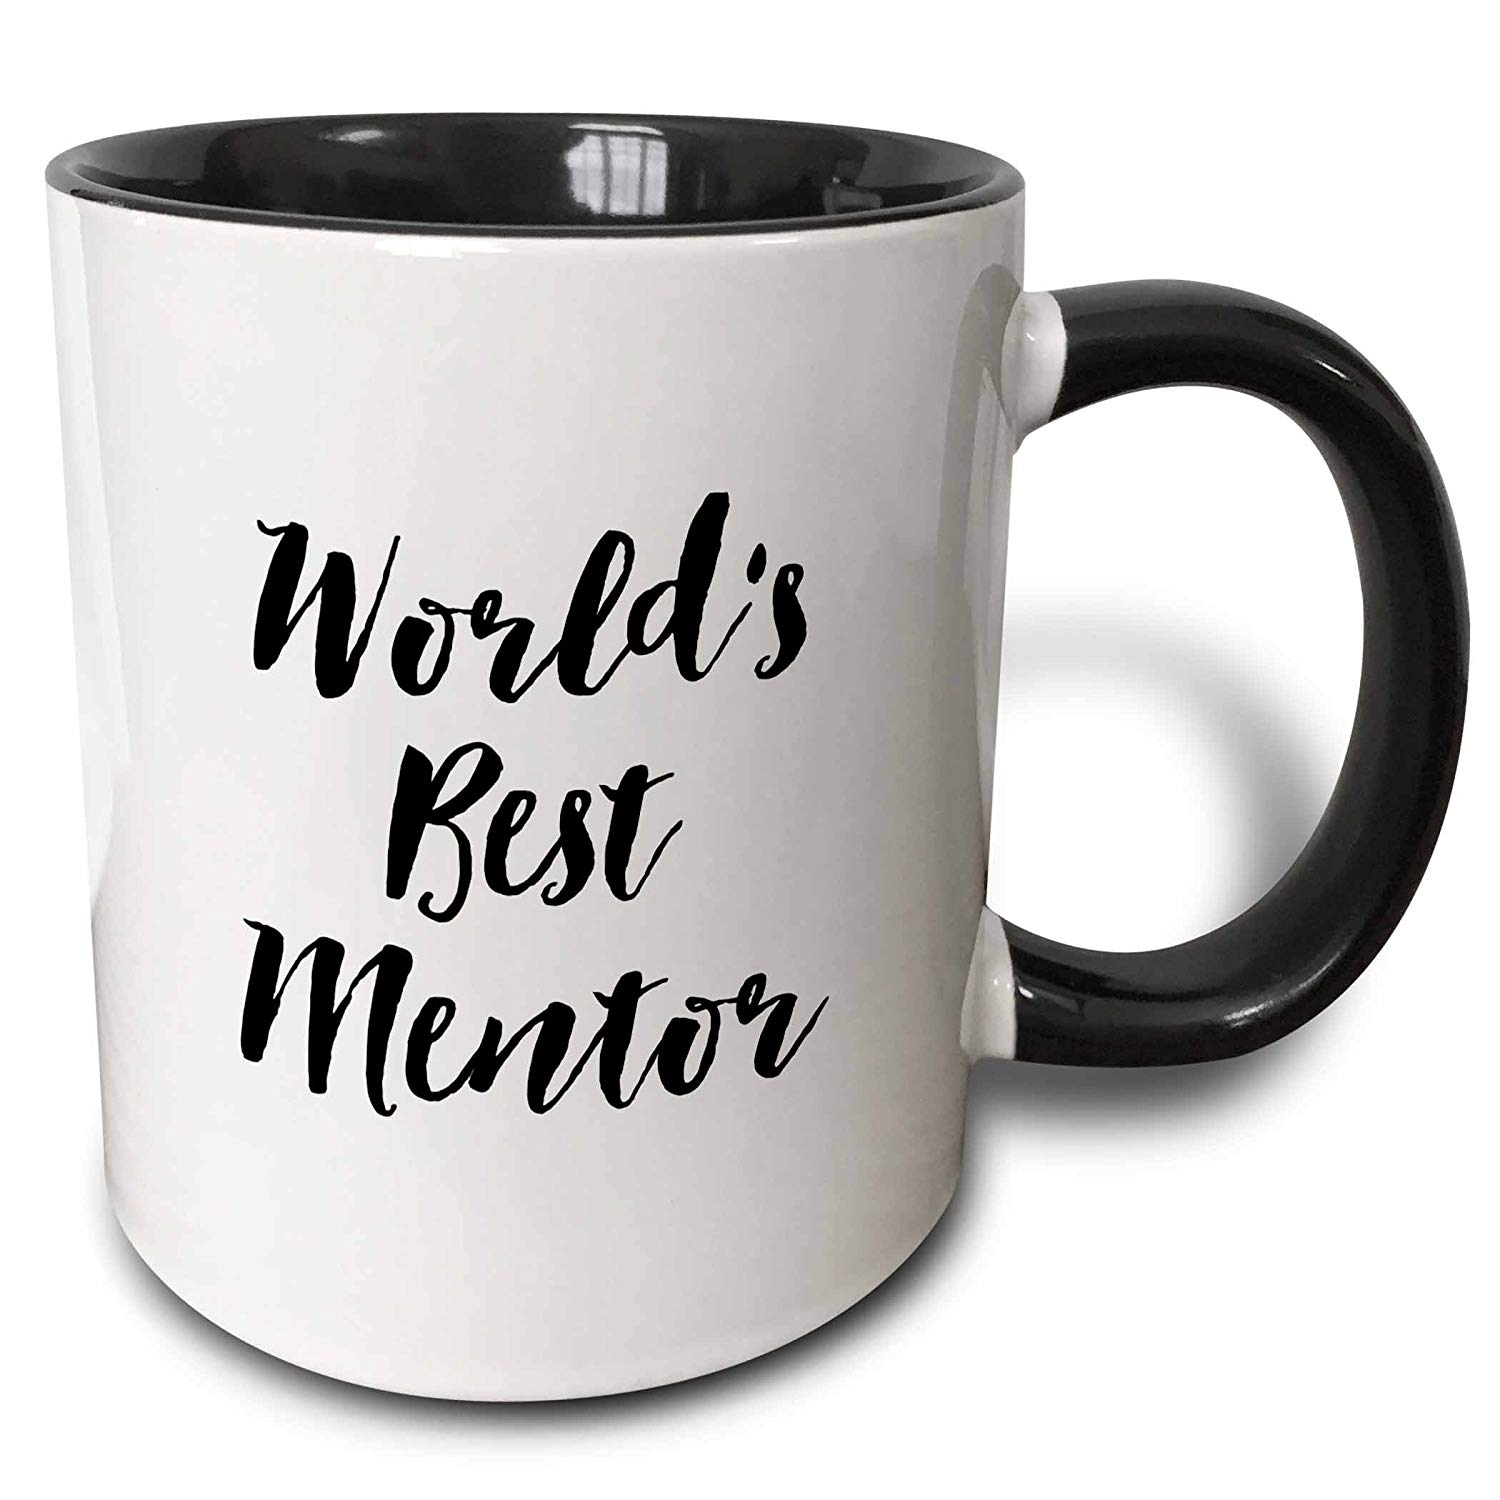 Gifts for mentors - A personalized Coffee mug with a message